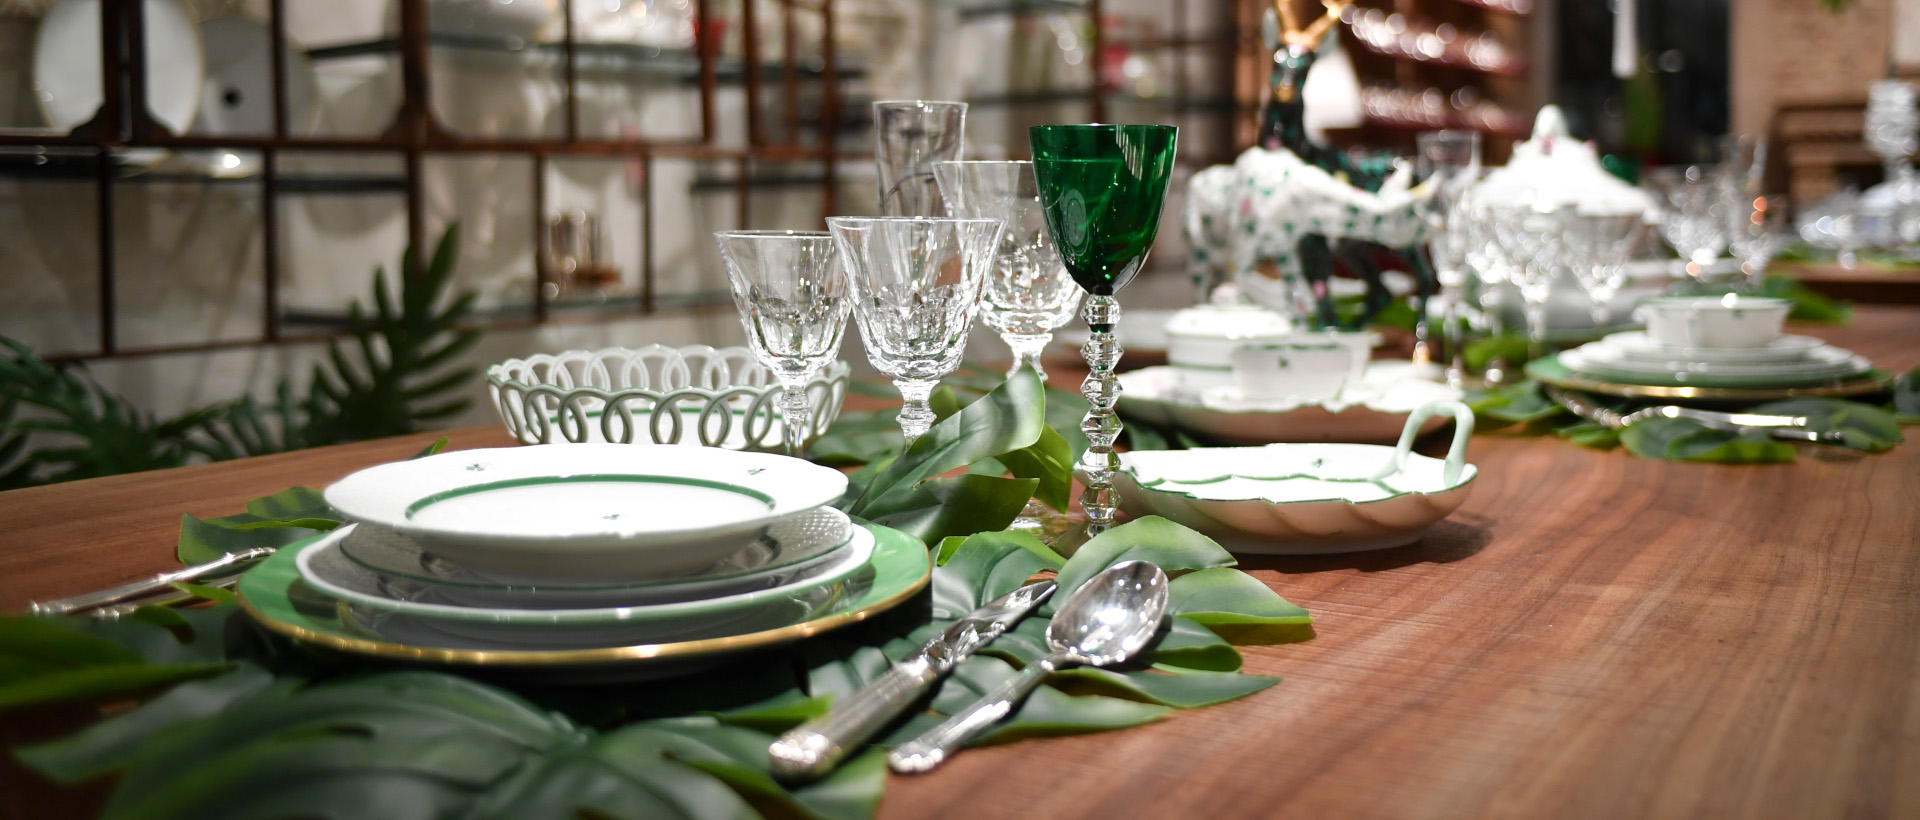 Morandin table set with Herend and Baccarat products